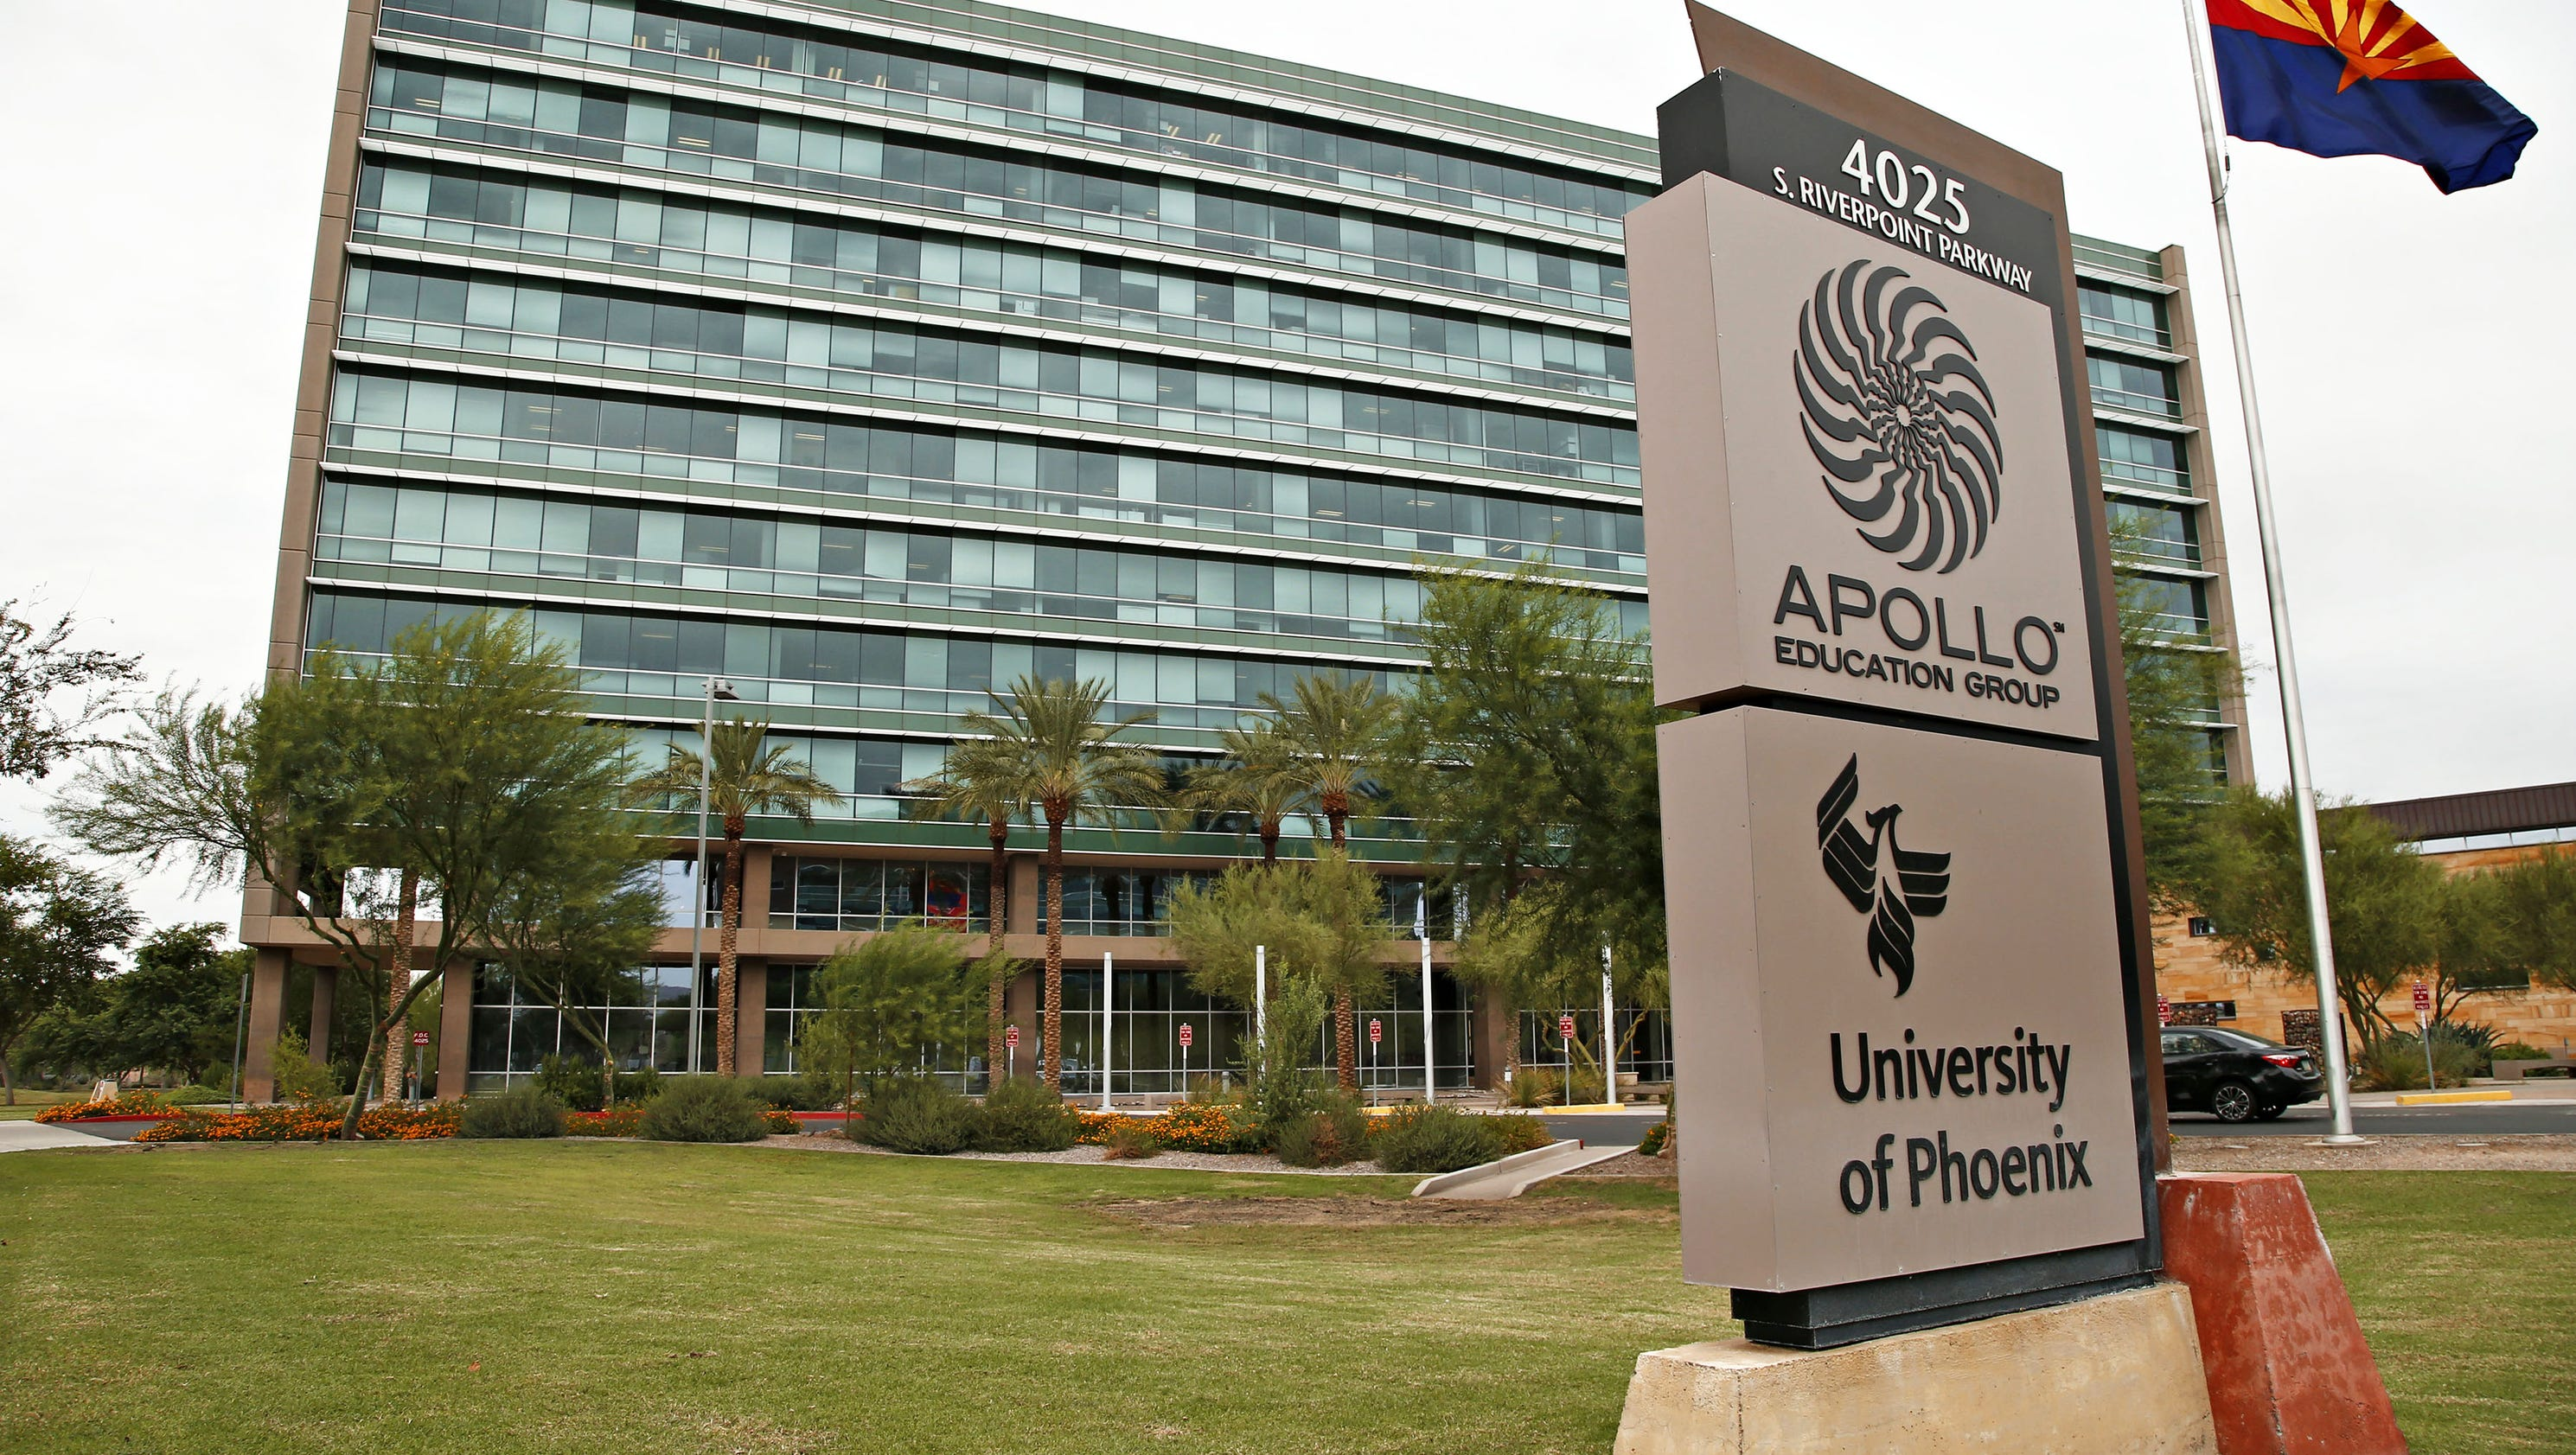 university of phoenix University of phoenix login and bill pay links, customer care, service, support and contact info find university of phoenix phone numbers, email addresses, and links.